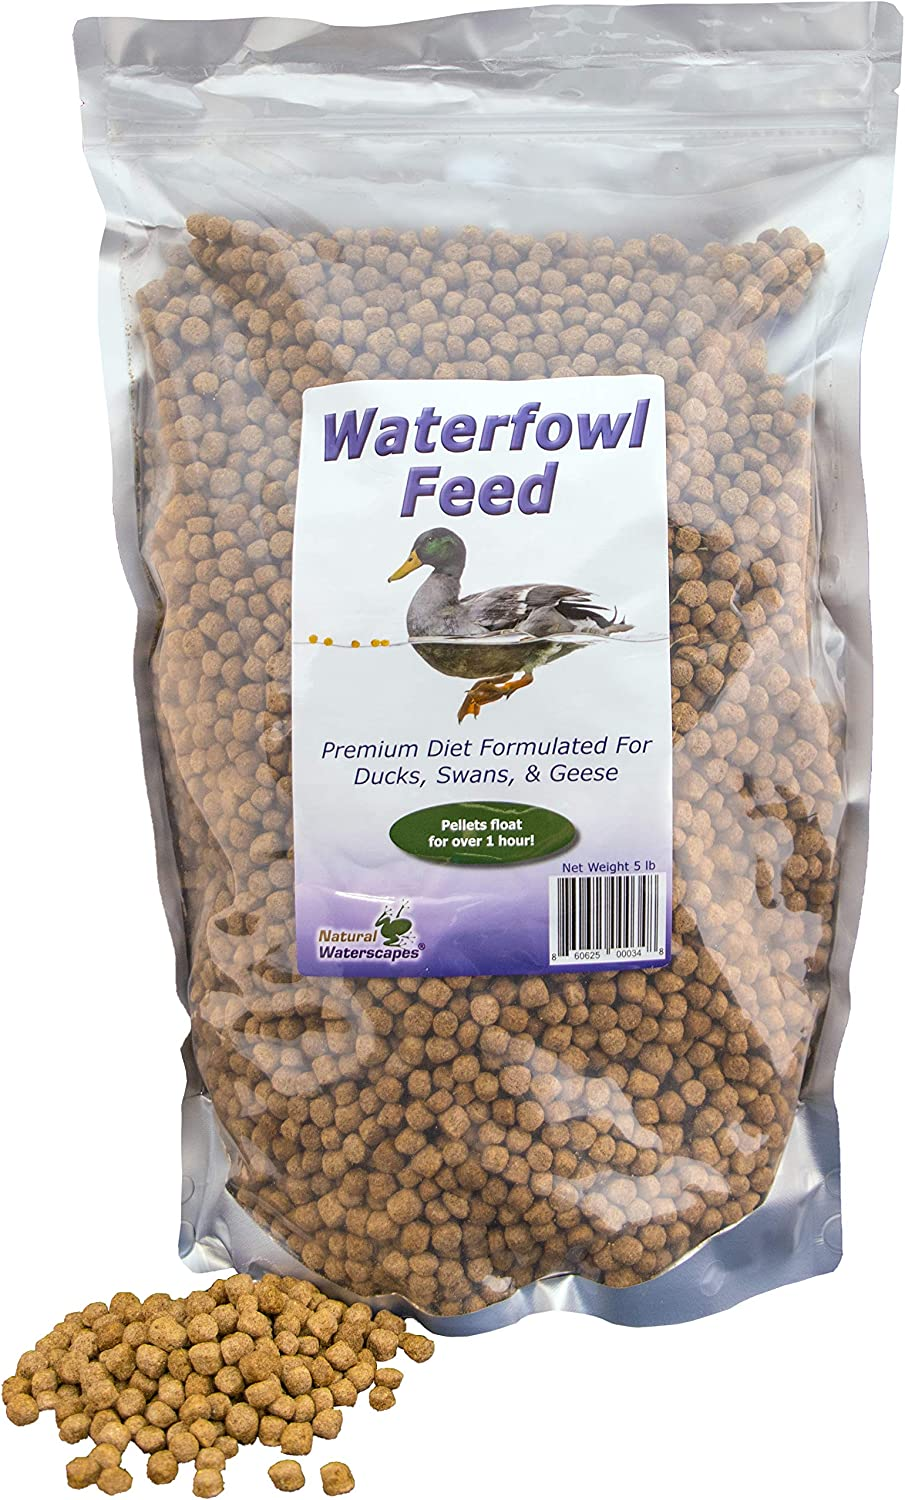 Natural Waterscapes Waterfowl Feed | Floating Pellets for Duck, Swan, Goose | 5 lb Resealable Bag | Use for Wild Duck, Pet Duck